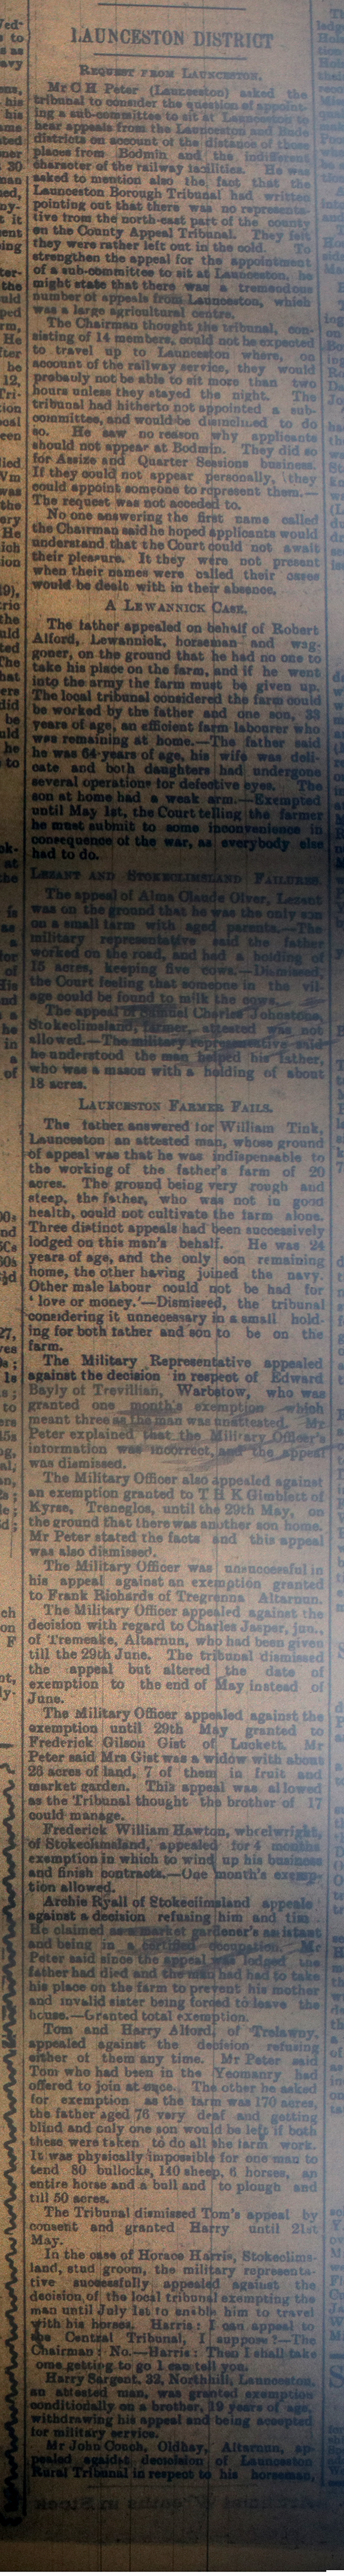 Launceston Tribunal March 25th, 1916